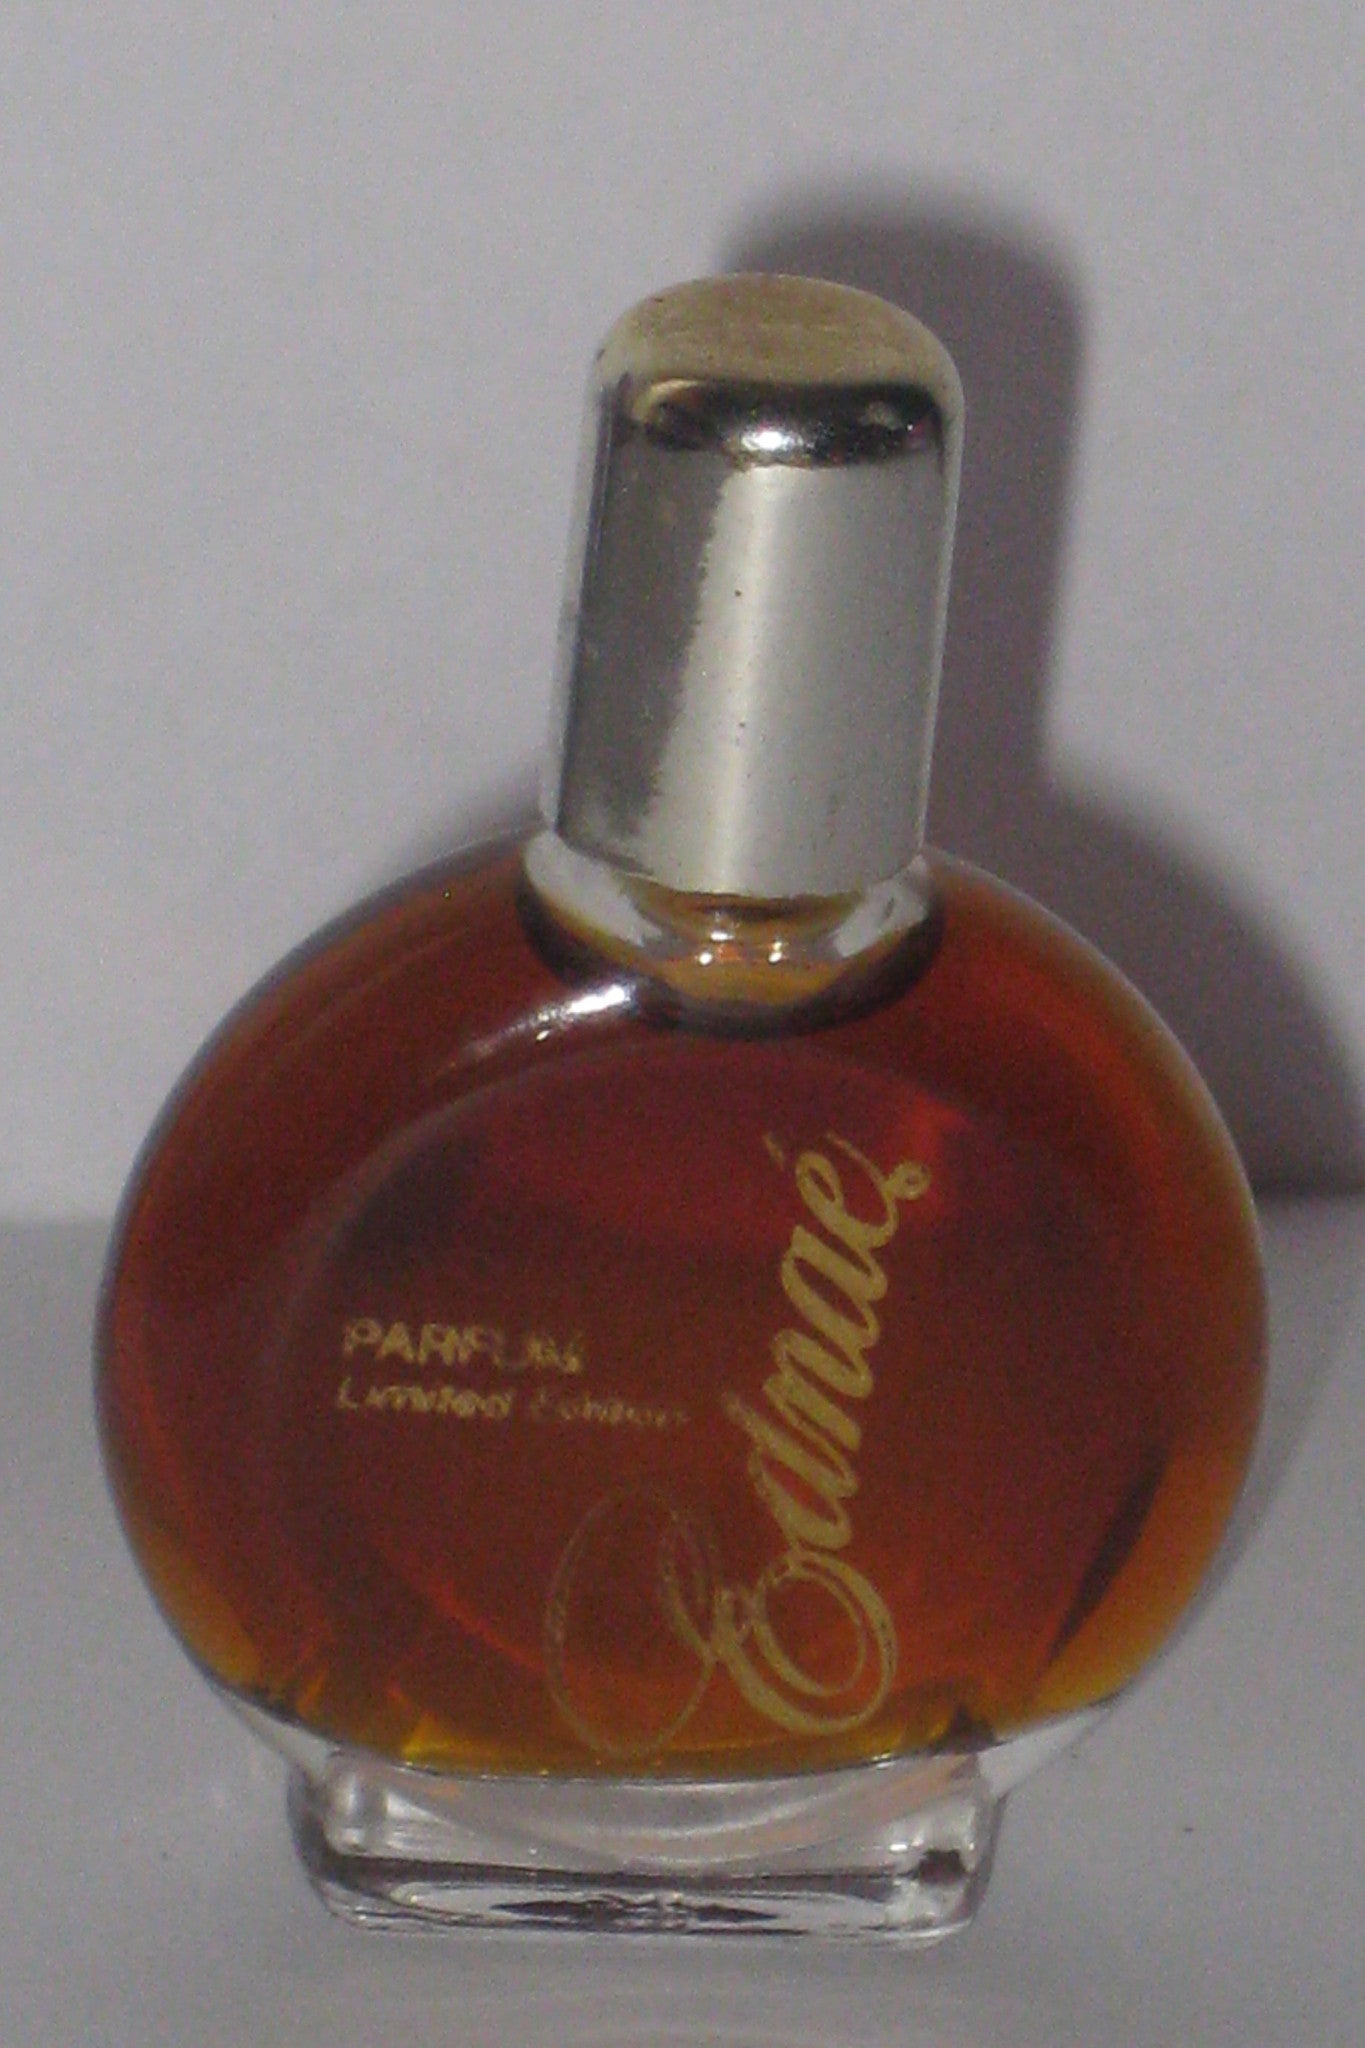 Limited Edition Ednae Parfum Mini